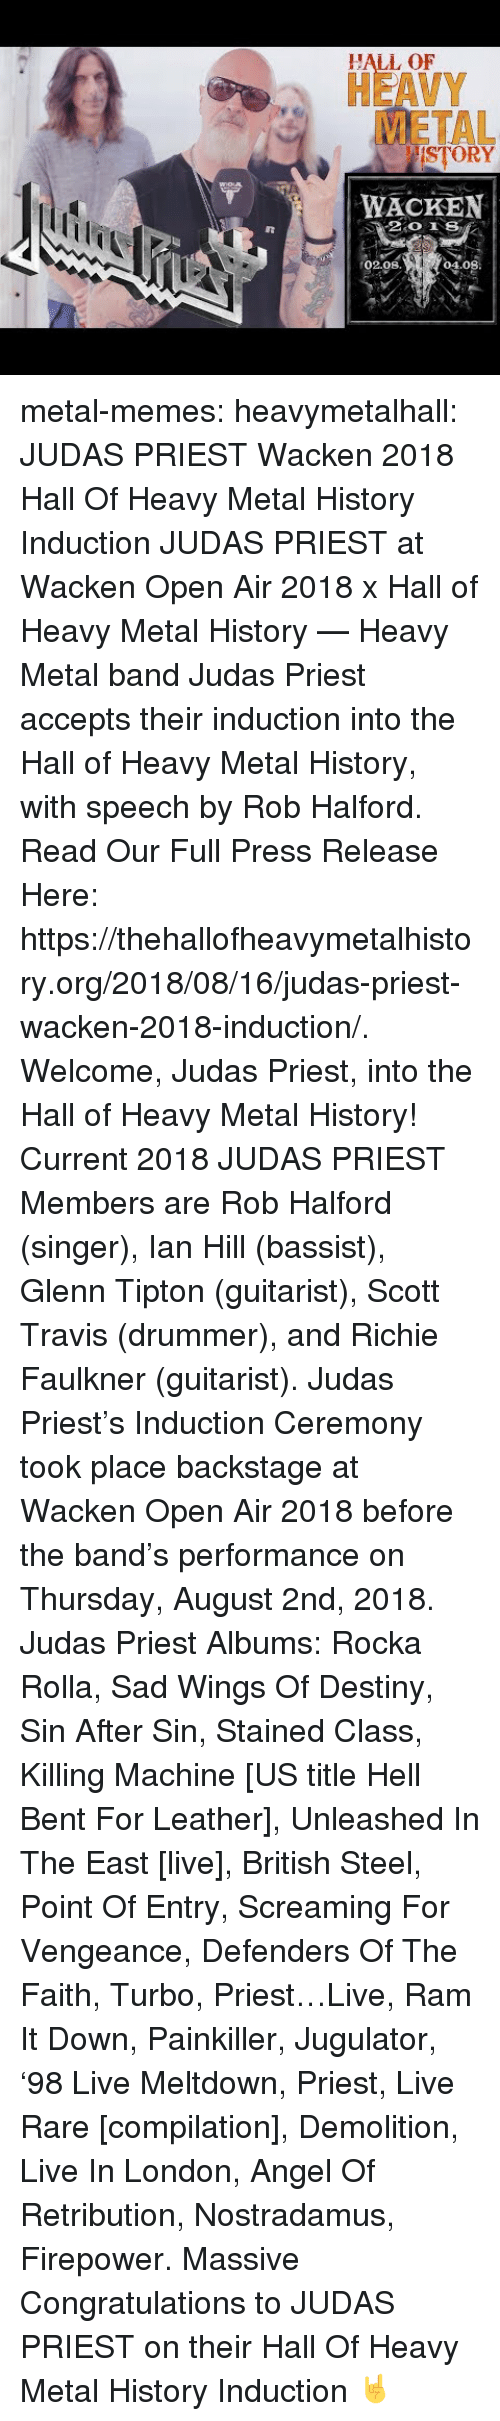 Destiny, Memes, and Tumblr: HALL OF  HEAVY  METAL  ISTORY  WACKEN  02.08  04.08 metal-memes:  heavymetalhall:  JUDAS PRIEST Wacken 2018 Hall Of Heavy Metal History Induction JUDAS PRIEST at Wacken Open Air 2018 x Hall of Heavy Metal History — Heavy Metal band Judas Priest accepts their induction into the Hall of Heavy Metal History, with speech by Rob Halford.   Read Our Full Press Release Here: https://thehallofheavymetalhistory.org/2018/08/16/judas-priest-wacken-2018-induction/.   Welcome, Judas Priest, into the Hall of Heavy Metal History!   Current 2018 JUDAS PRIEST Members are Rob Halford (singer), Ian Hill (bassist), Glenn Tipton (guitarist), Scott Travis (drummer), and Richie Faulkner (guitarist).  Judas Priest's Induction Ceremony took place backstage at Wacken Open Air 2018 before the band's performance on Thursday, August 2nd, 2018.   Judas Priest Albums: Rocka Rolla, Sad Wings Of Destiny, Sin After Sin, Stained Class, Killing Machine [US title Hell Bent For Leather], Unleashed In The East [live], British Steel, Point Of Entry, Screaming For Vengeance, Defenders Of The Faith, Turbo, Priest…Live, Ram It Down, Painkiller, Jugulator, '98 Live Meltdown, Priest, Live  Rare [compilation], Demolition, Live In London, Angel Of Retribution, Nostradamus, Firepower.  Massive Congratulations to JUDAS PRIEST on their Hall Of Heavy Metal History Induction 🤘